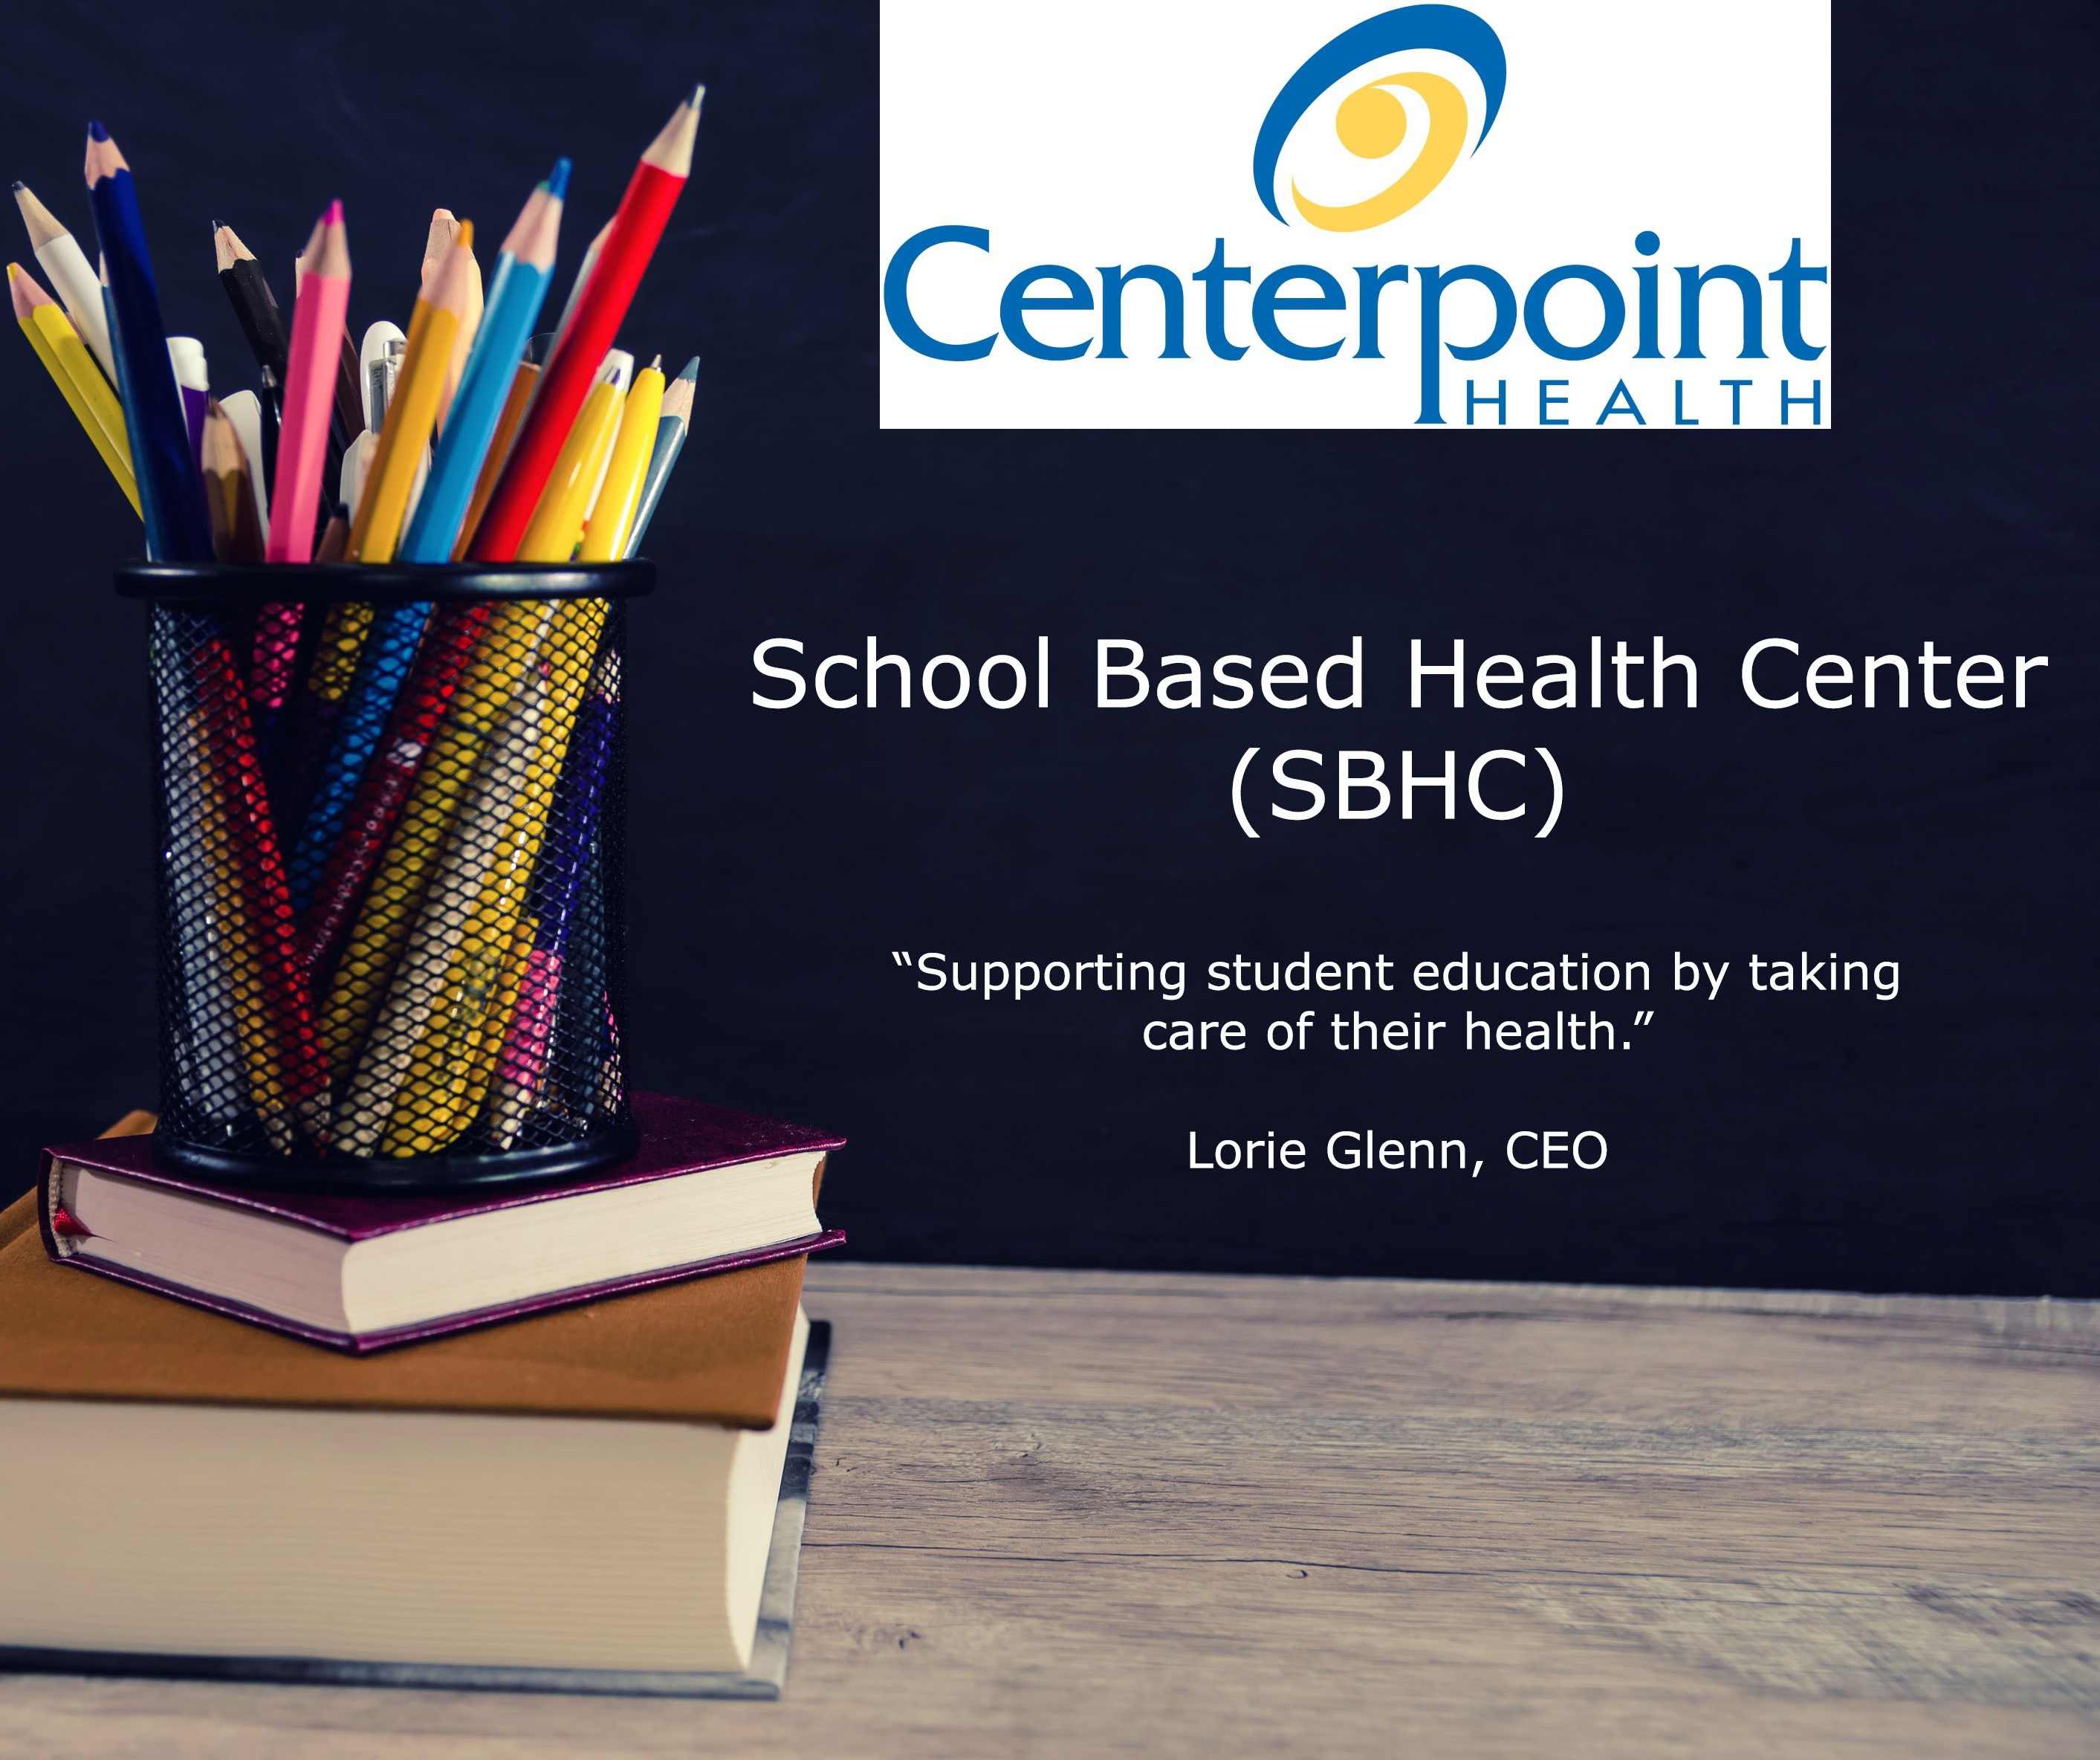 Centerpoint Health is opening a school-based health center at Norwood City Schools